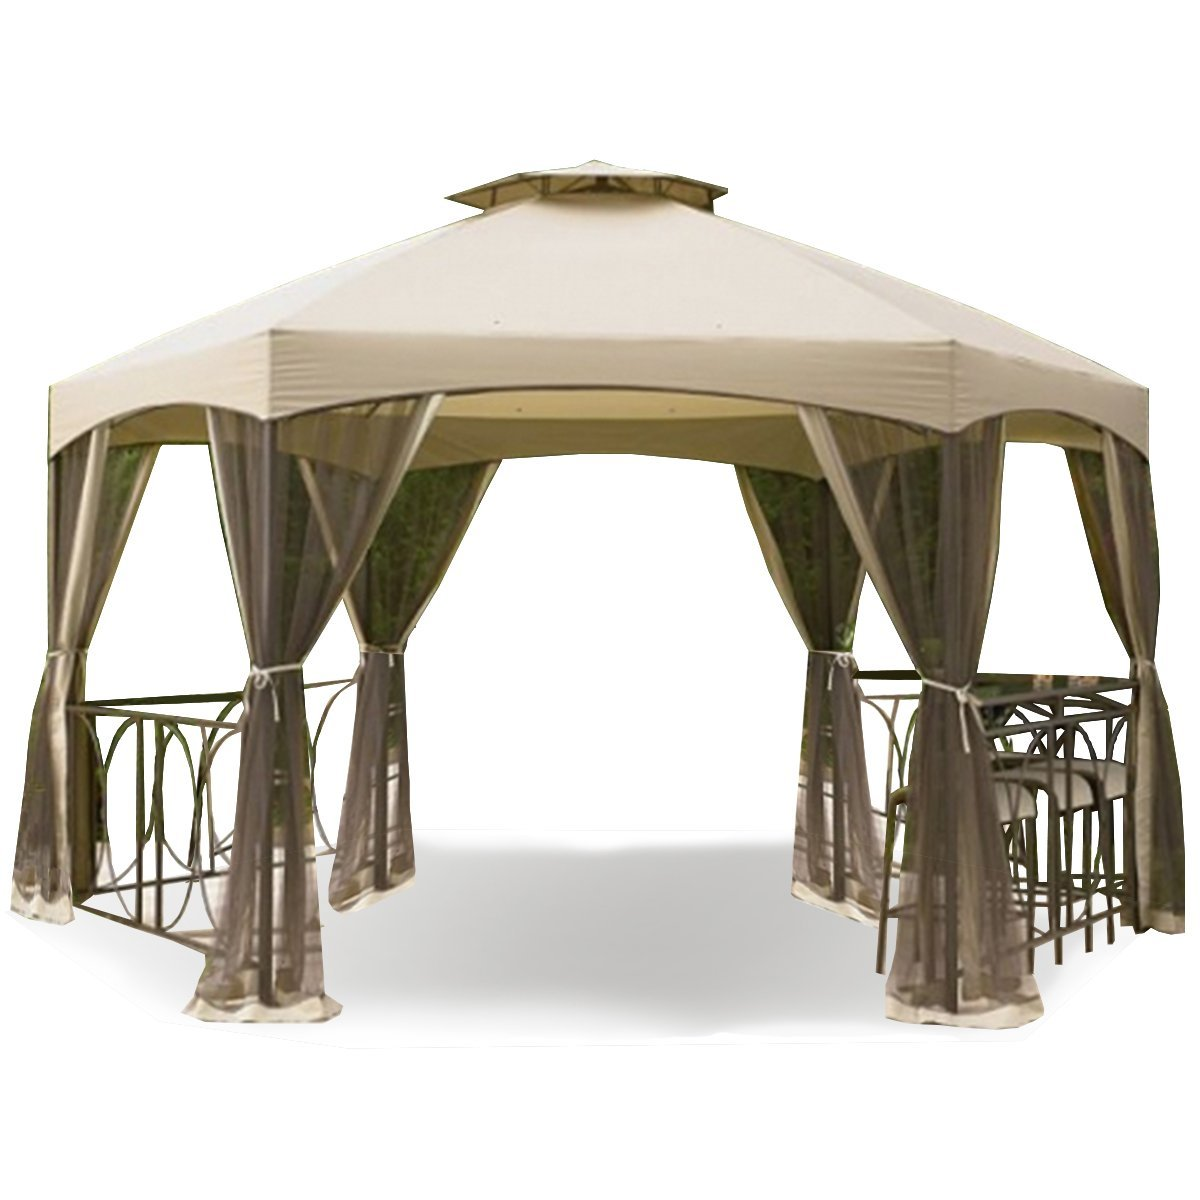 Amazon.com  Garden Winds Replacement Canopy for the Dutch Harbor Gazebo  Garden u0026 Outdoor  sc 1 st  Amazon.com : replacement canopies for gazebos - memphite.com